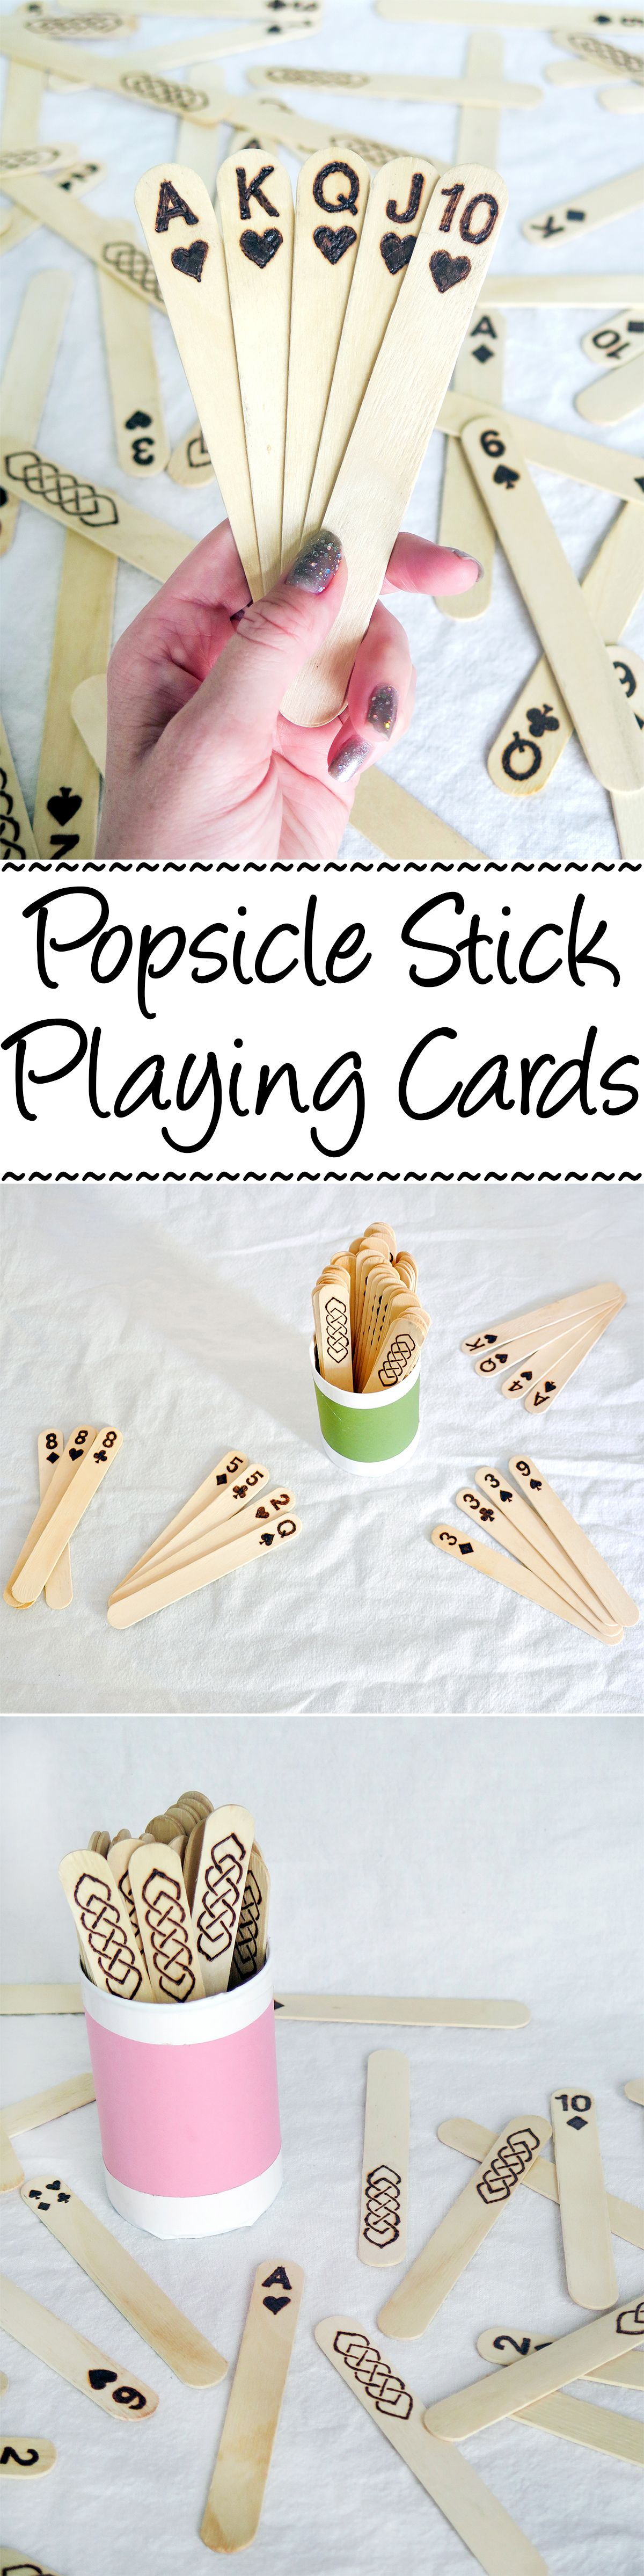 Photo of Popsicle Stick Playing Cards